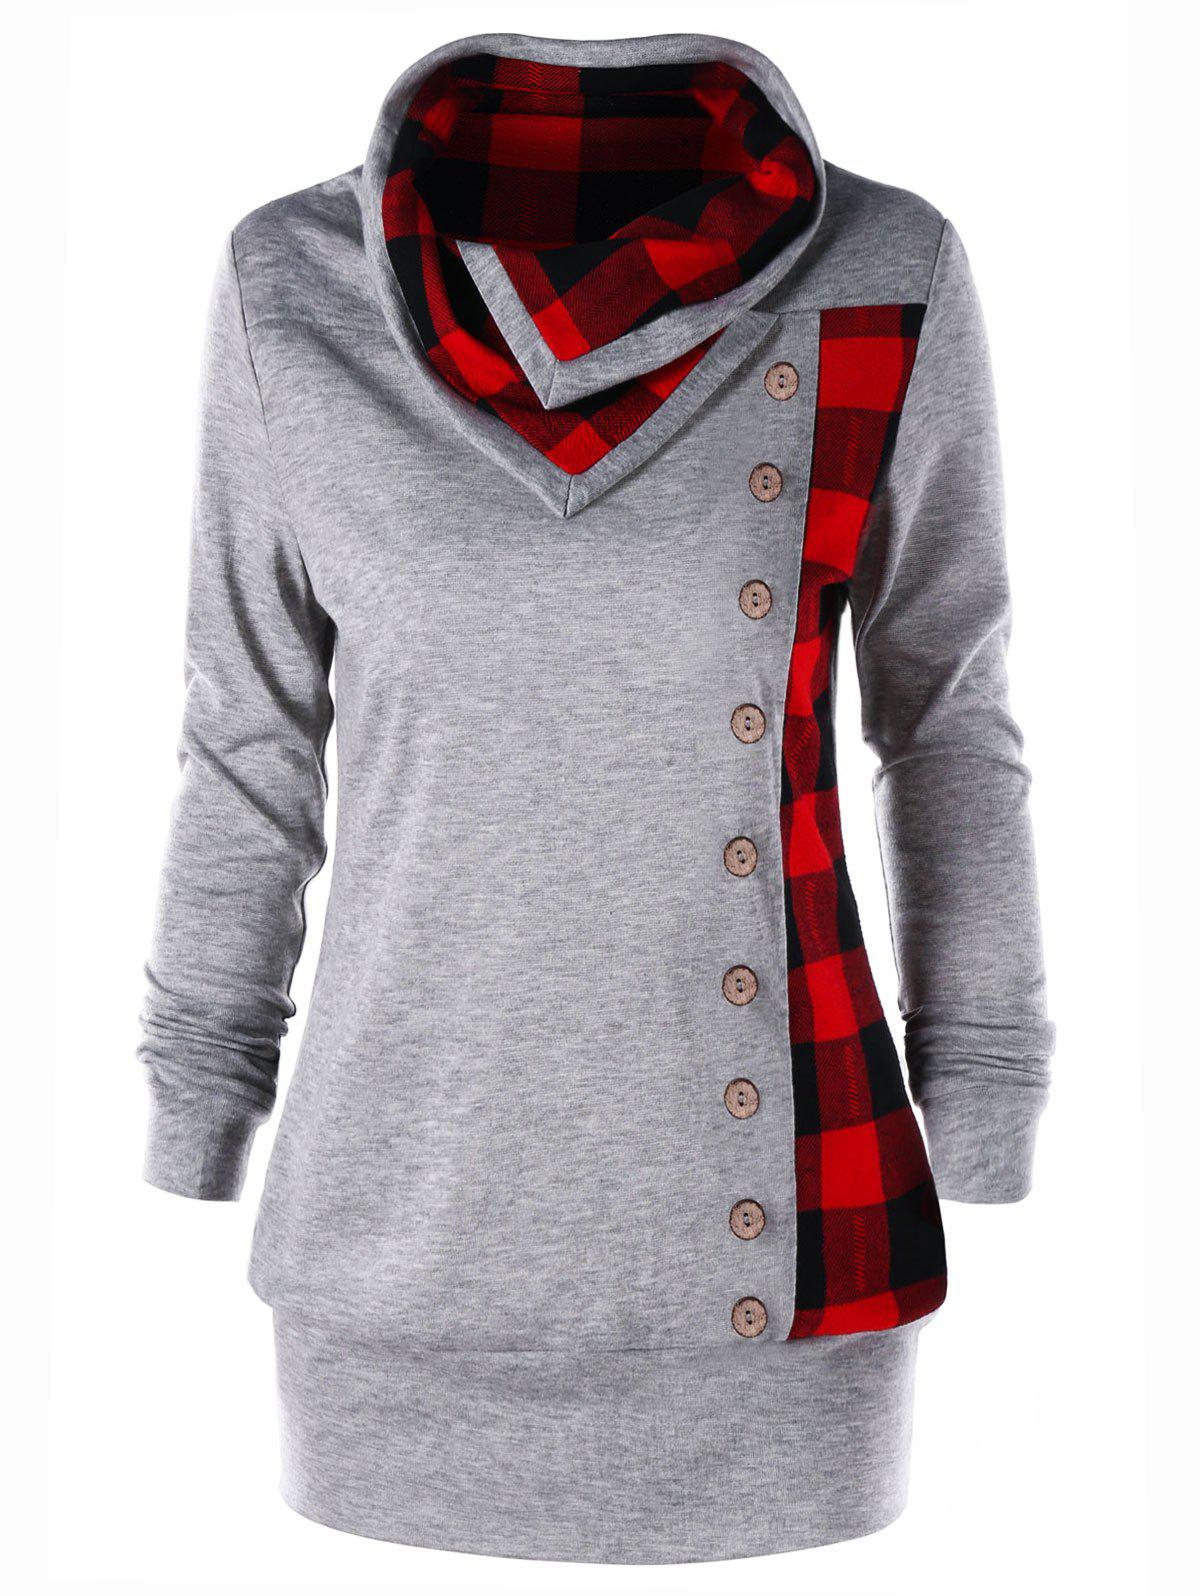 Plus Size Cowl Neck Plaid Sweatshirt Rosegal